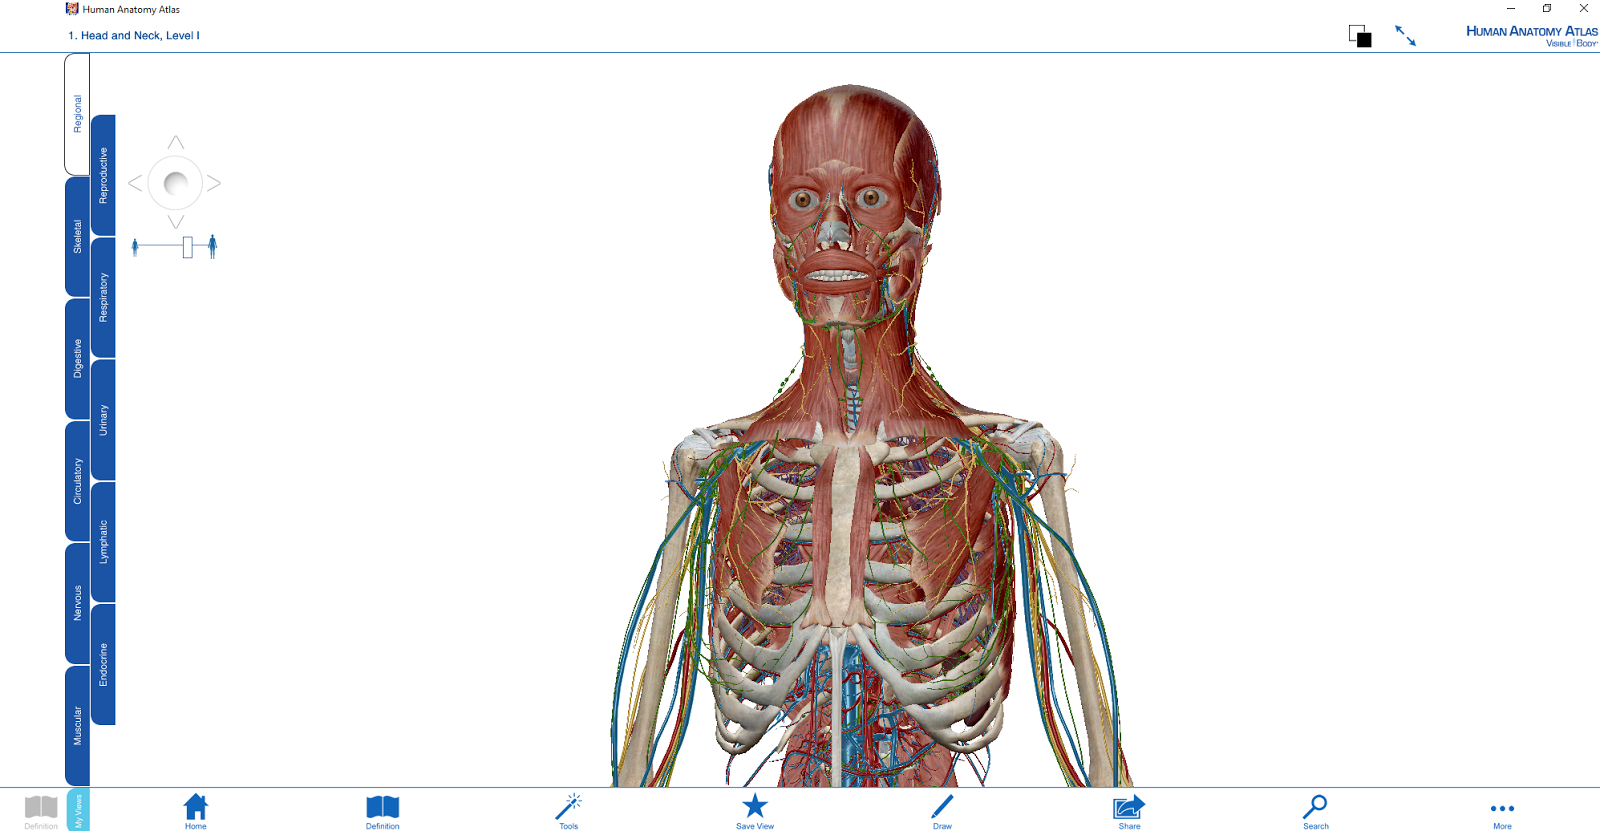 3d Human Anatomy Atlas Visible Body